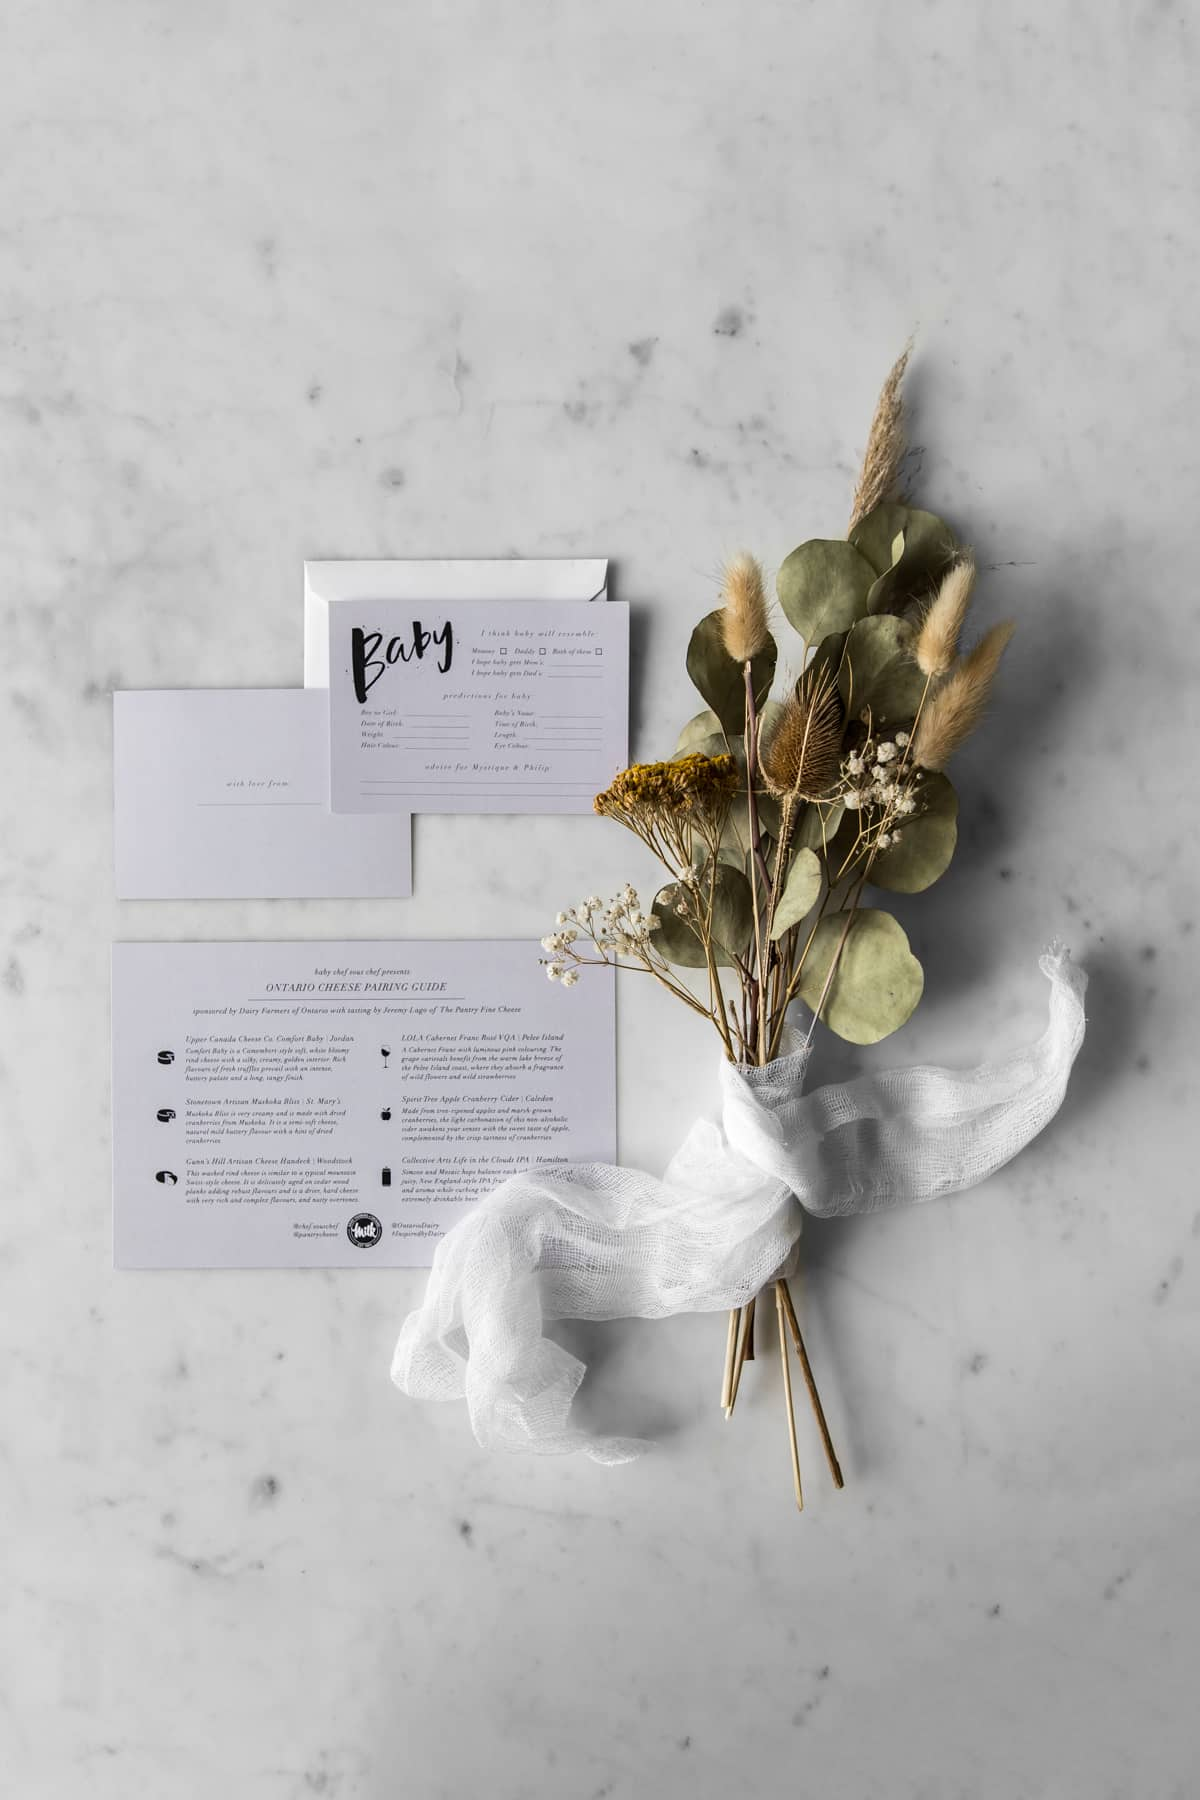 Dried flowers with virtual baby shower invitation and cheese pairing guide